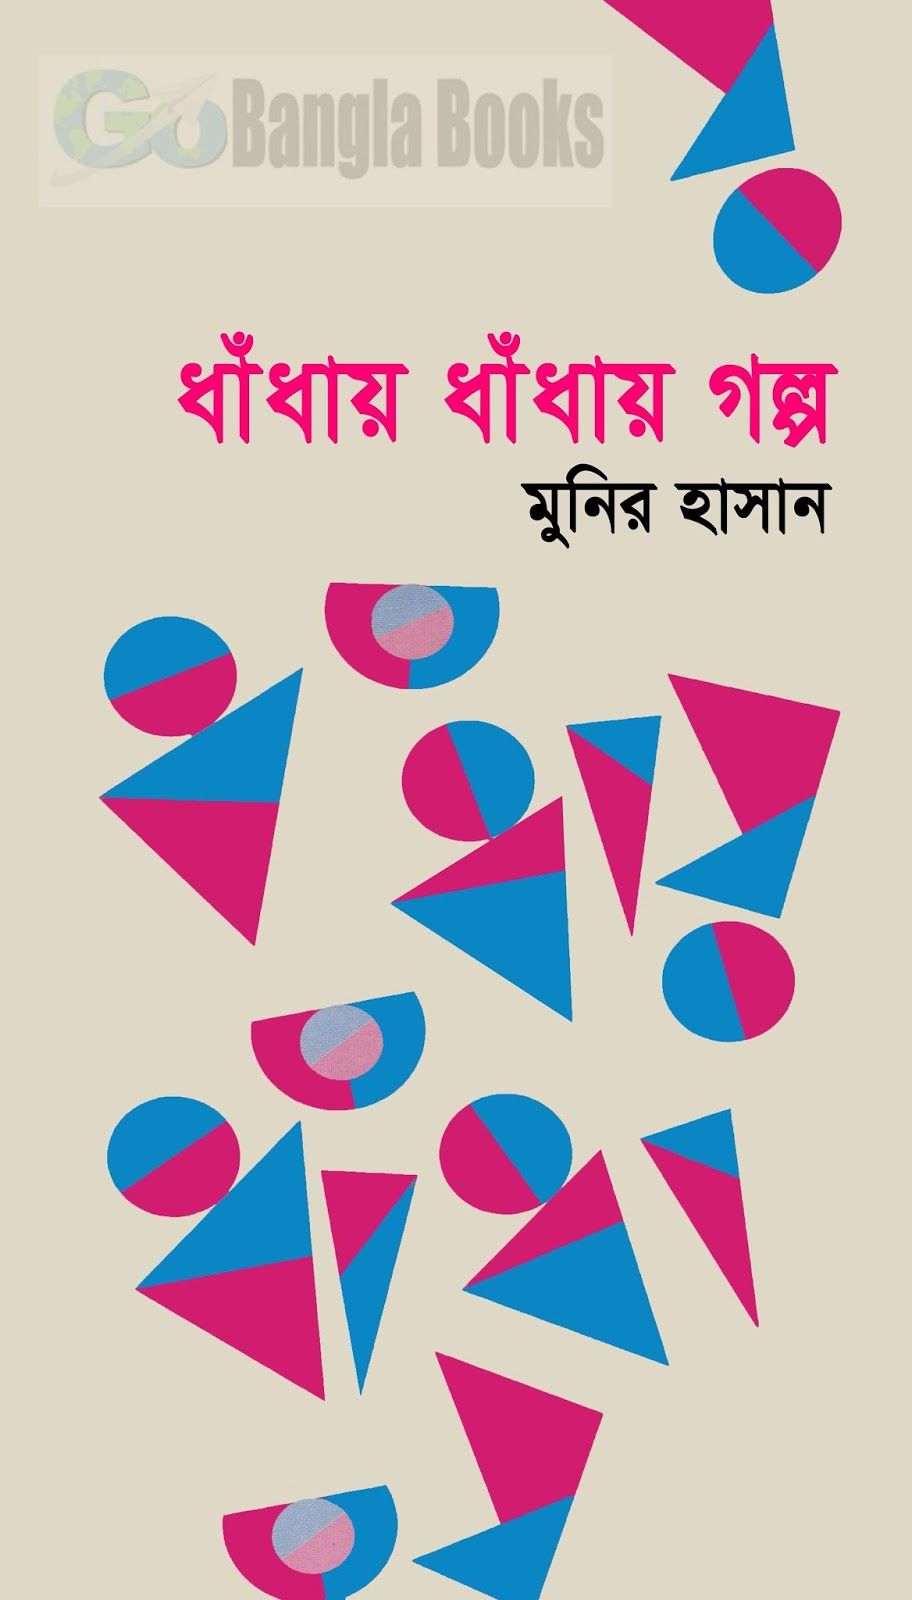 bengali essays ebooks Free english & bengali essays for school students children on many topics and subjects arked educational services provides free school english essays articles projects ebooks.